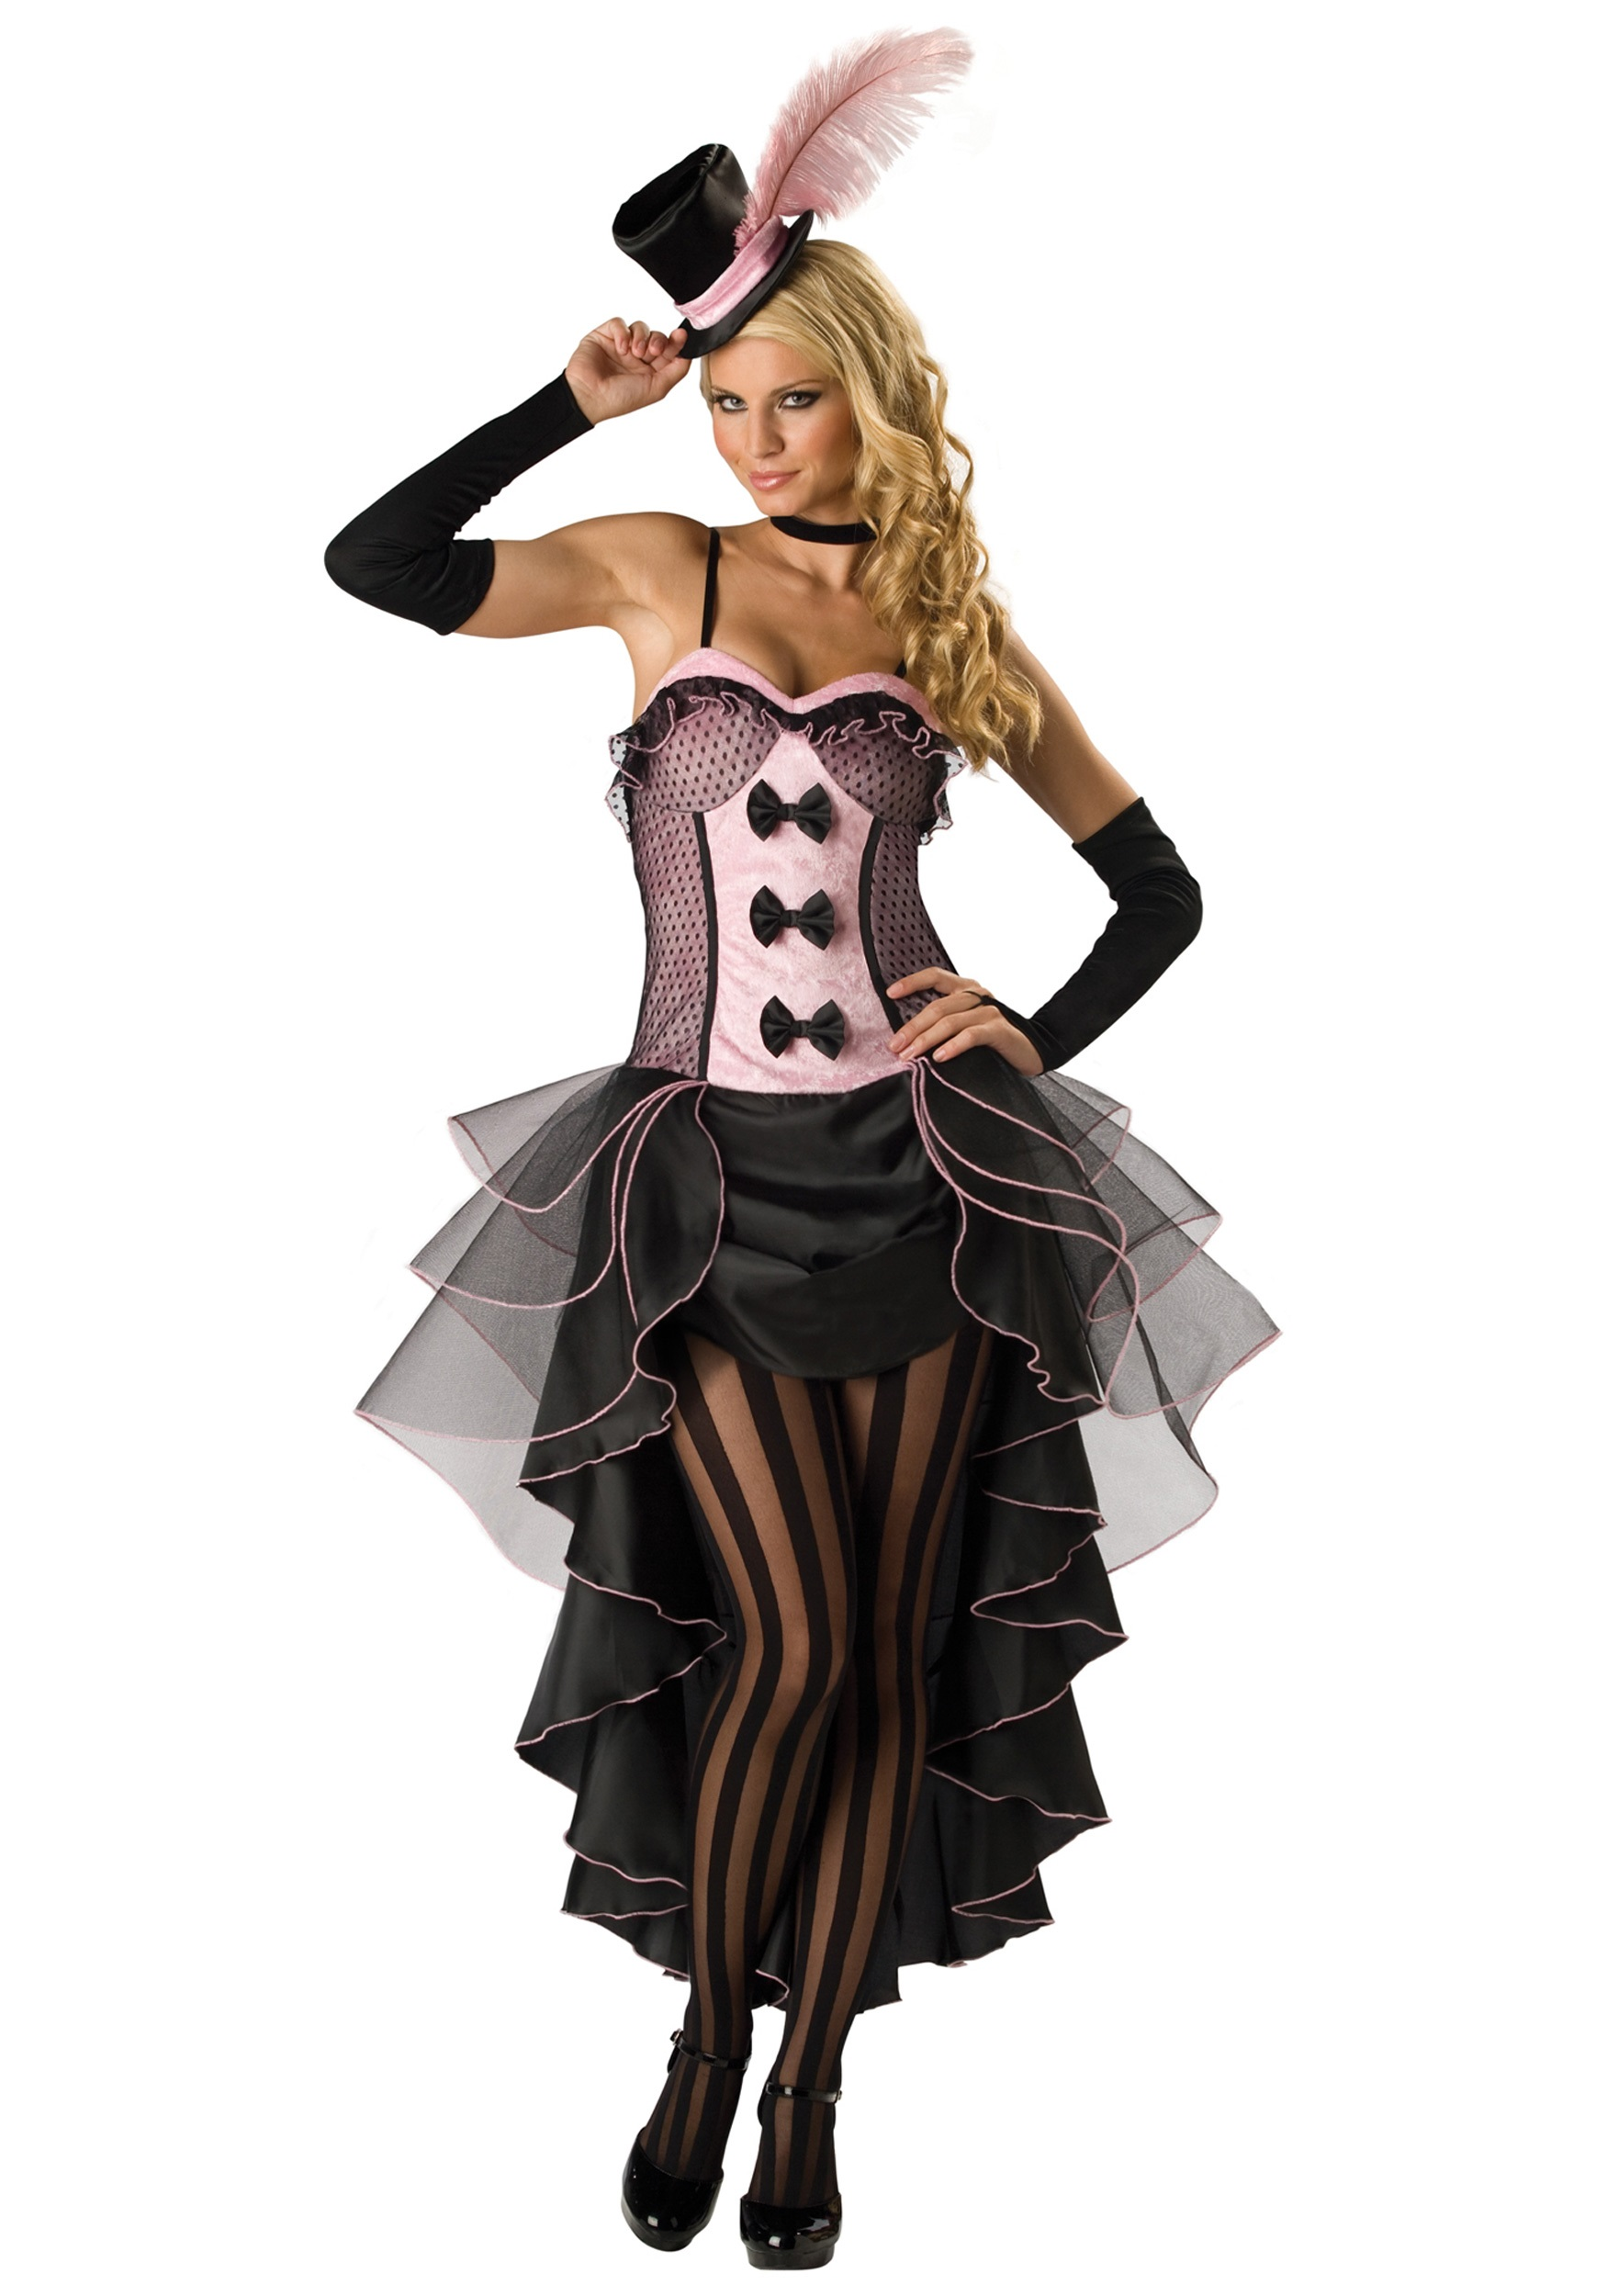 7eede37dfc43b Showgirl Outfits & Sexy Burlesque Costumes - HalloweenCostumes.com